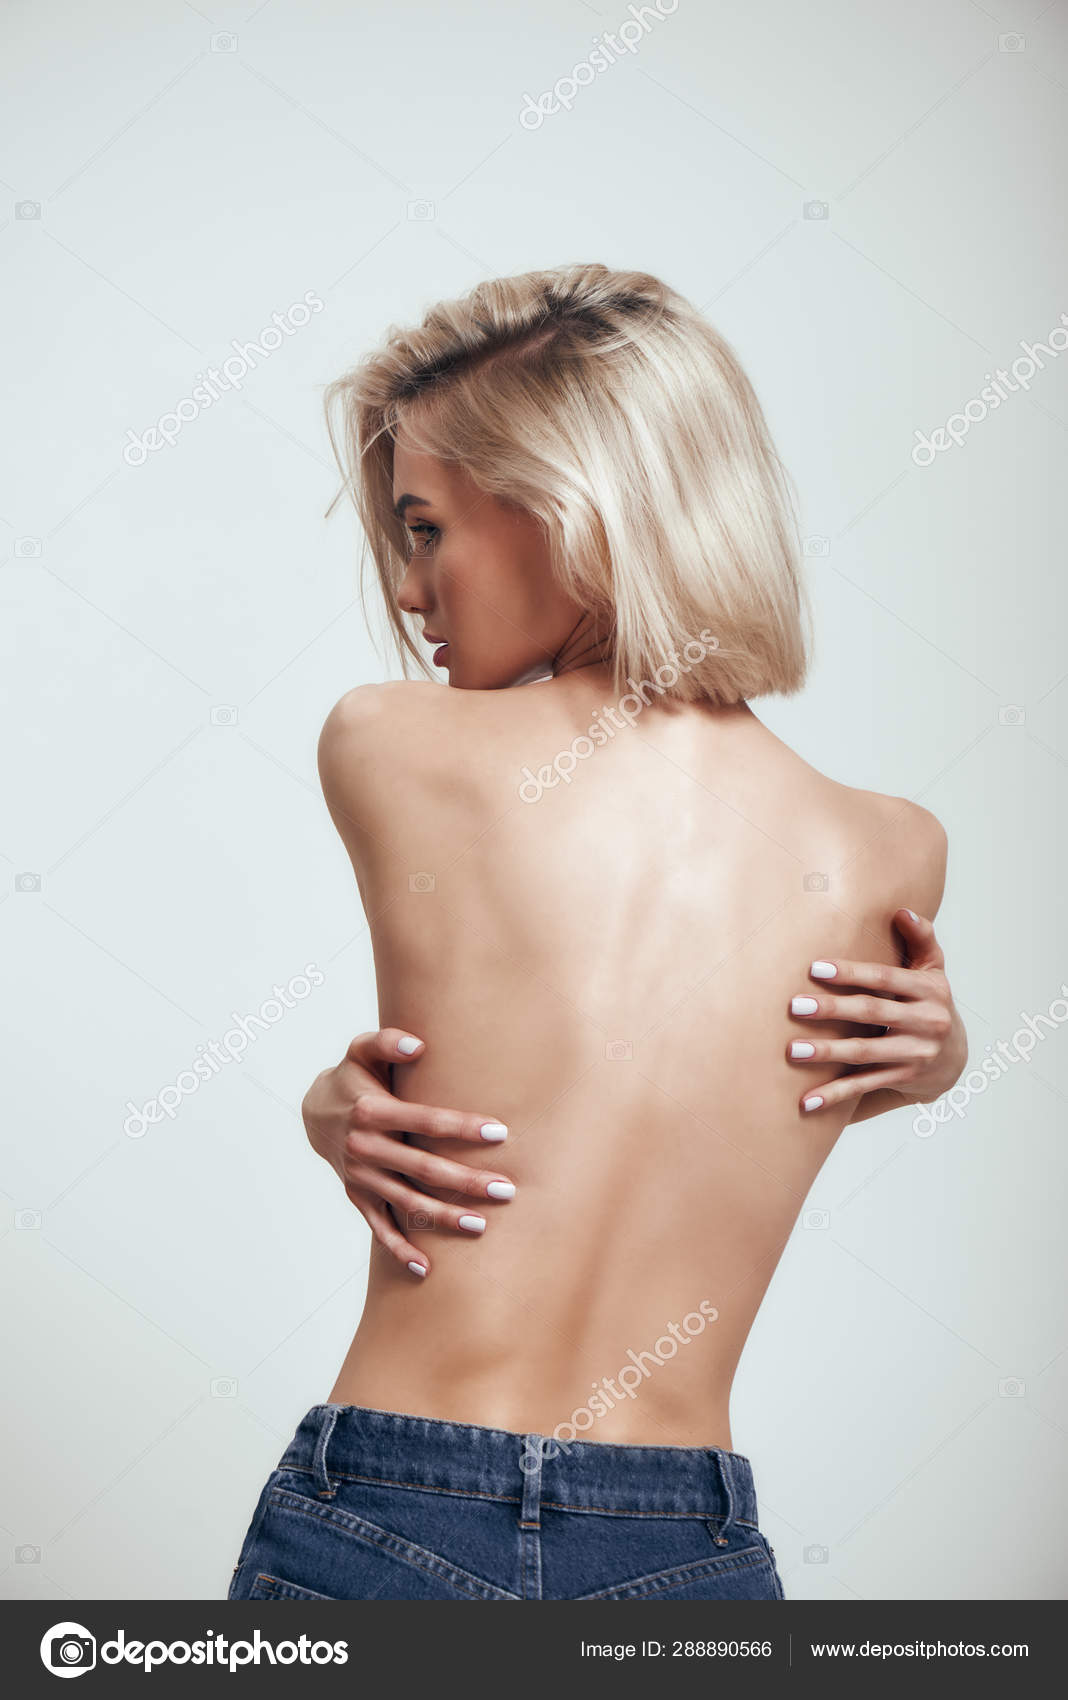 Hot girl covering naked body with hands Beautiful Body Naked Back Of Sexy Slim Woman With Blond Hair Covering Her Breast With Her Hands While Standing Against Grey Background Stock Photo By C Dima Sidelnikov 288890566